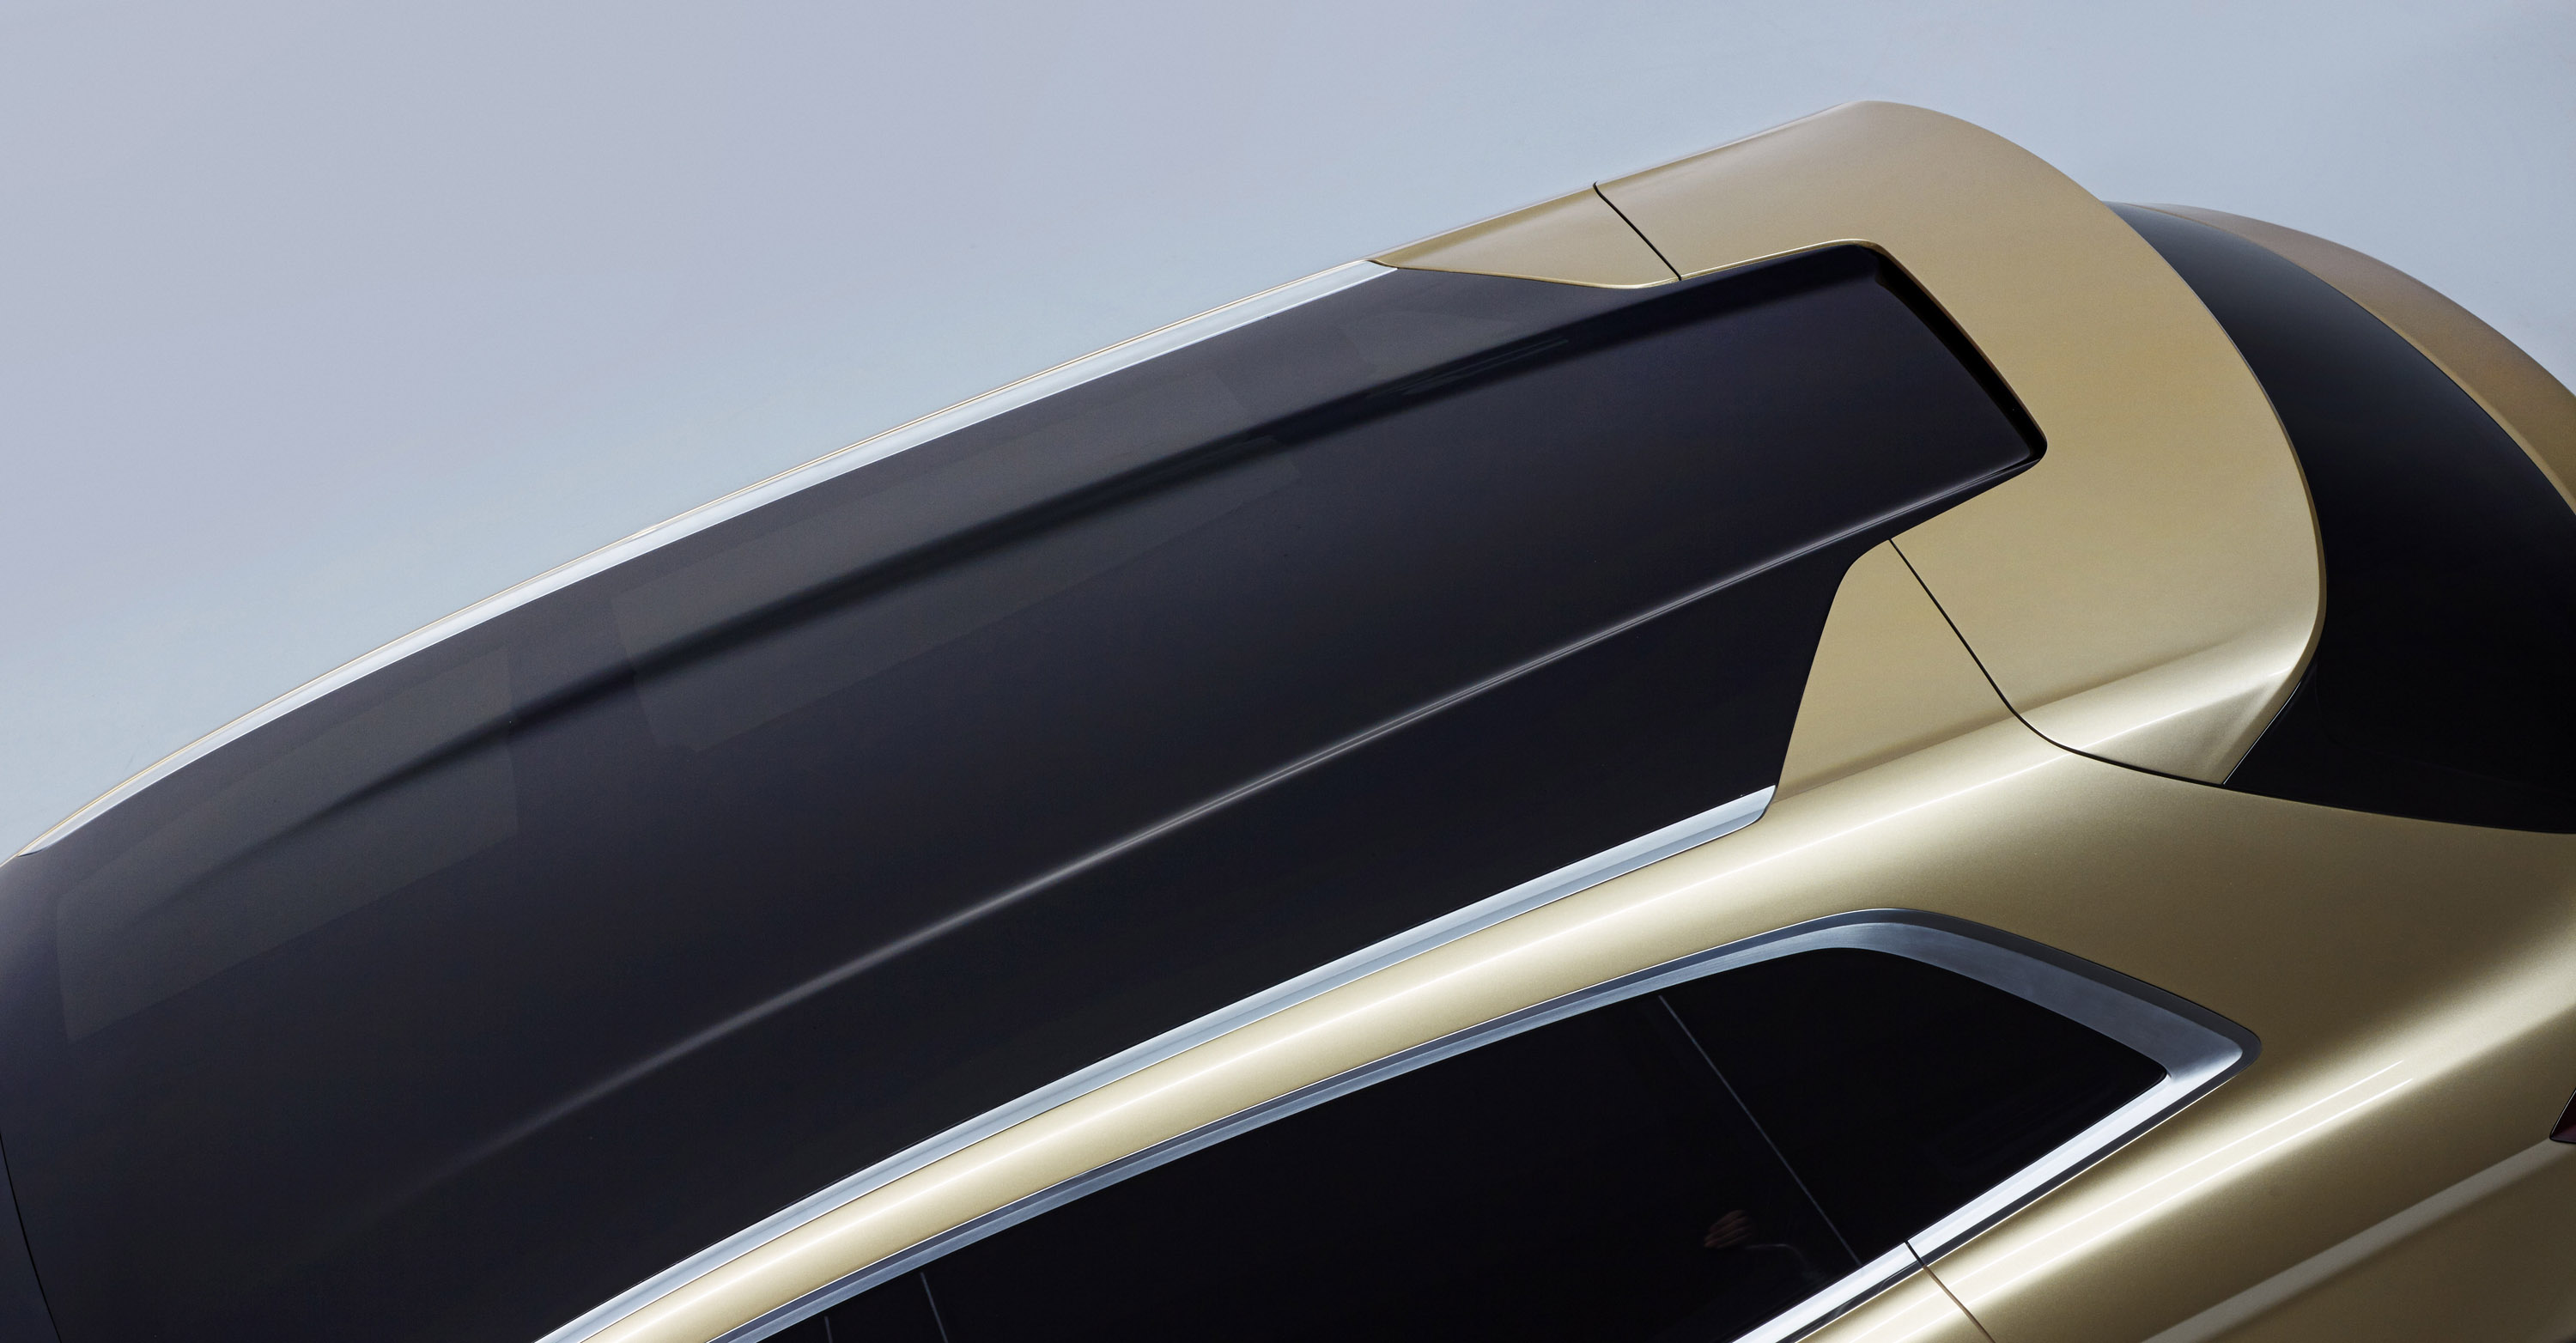 https://www.carsinvasion.com/gallery/2014-lincoln-mkx-concept/2014-lincoln-mkx-concept-12.jpg